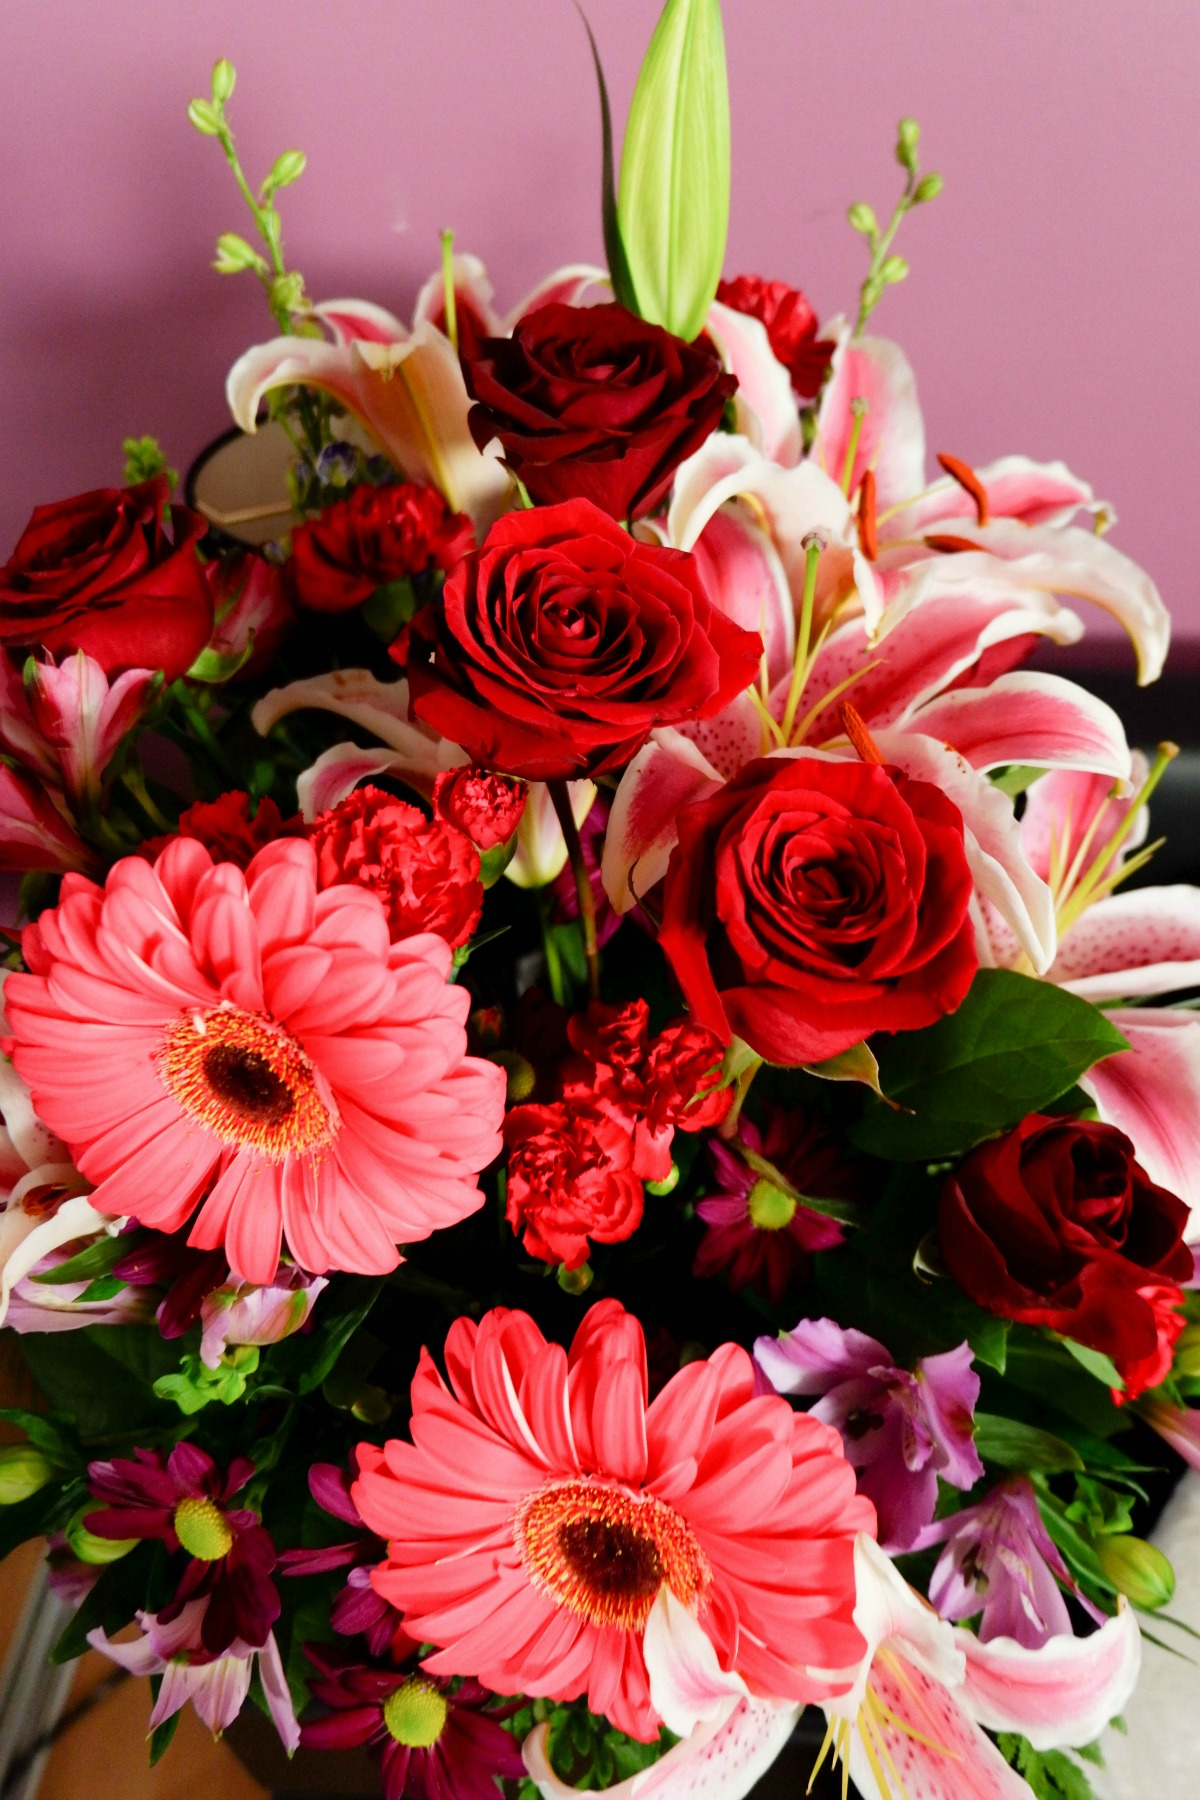 Valentine's flowers - bouquet